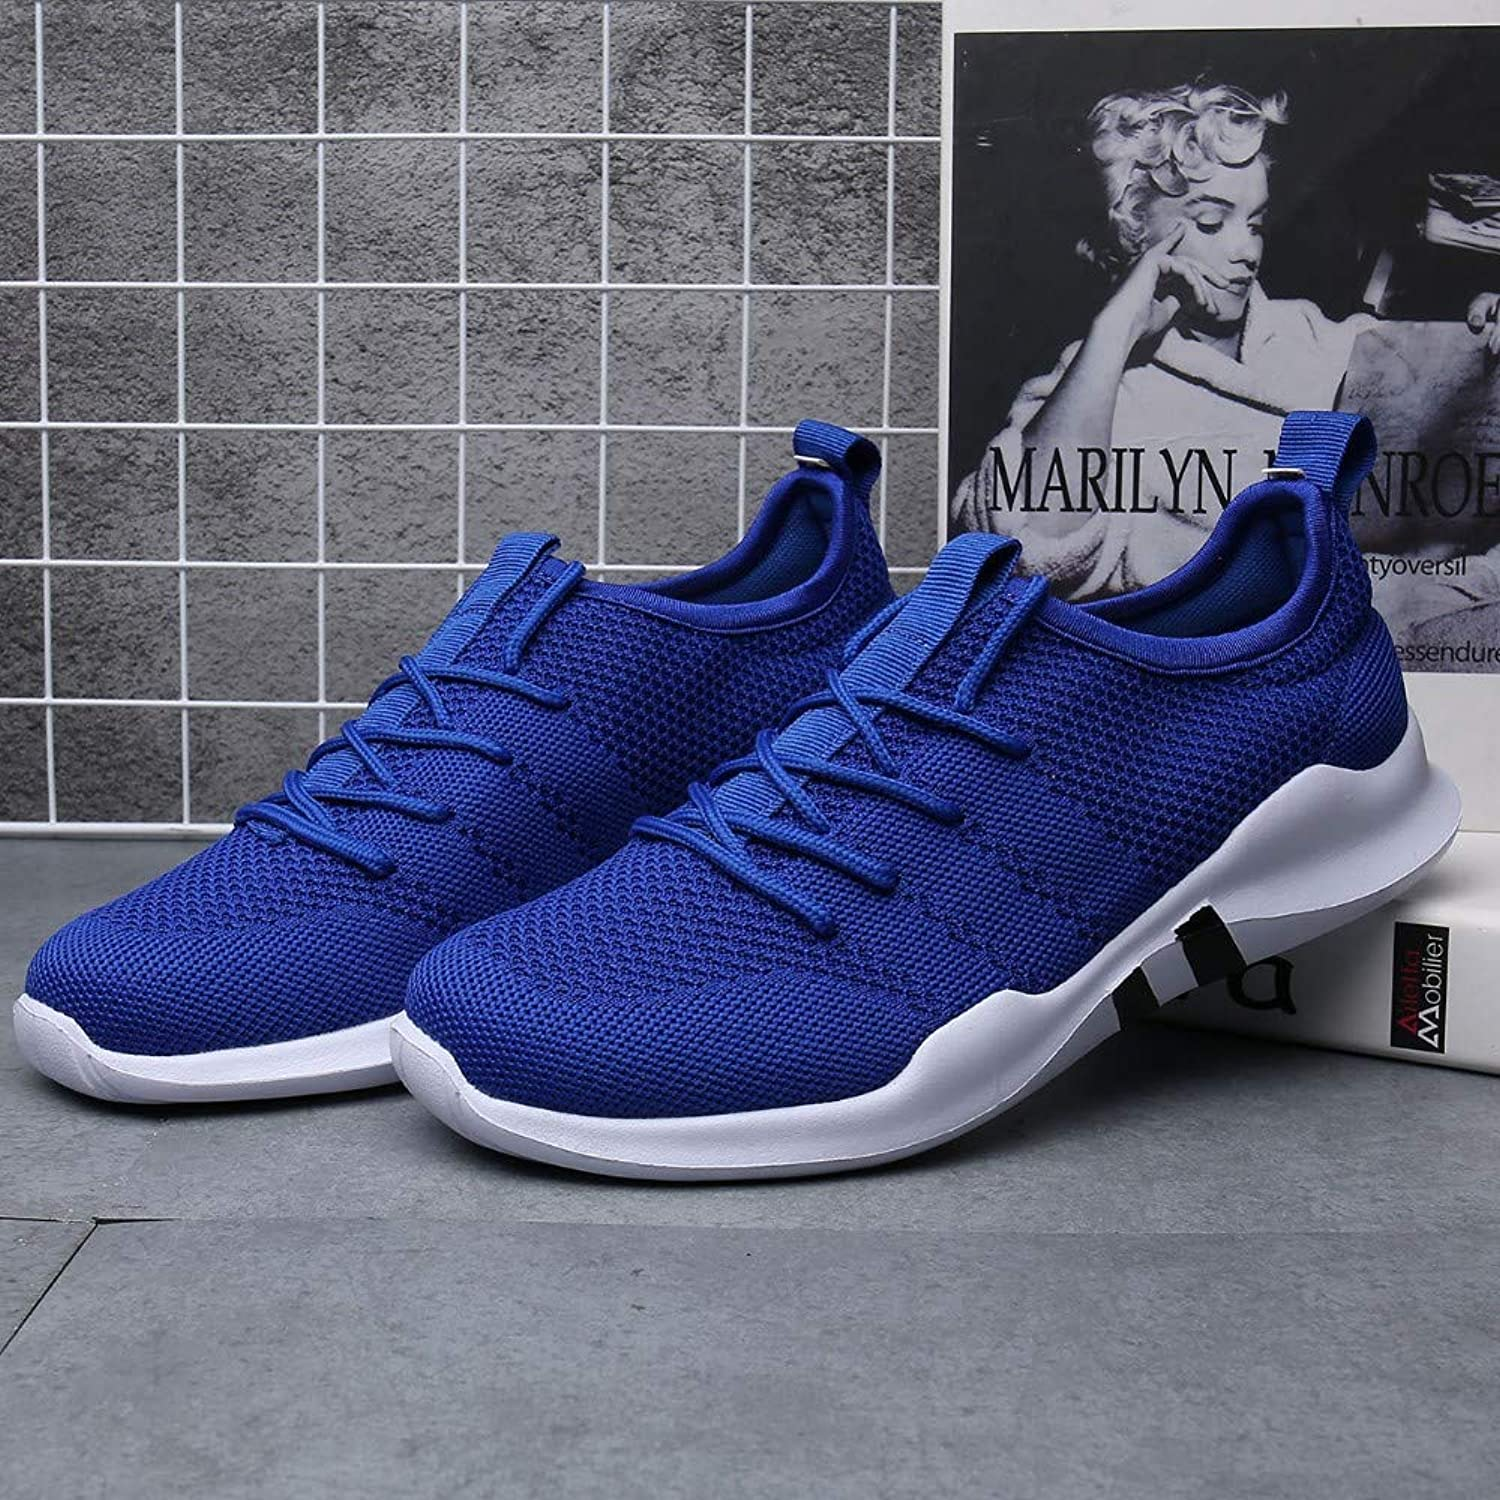 YAYADI Fitness Breathable Running shoes Sapatos Masculino Men Sneakers Male Athletic Sport shoes Outdoor Lightweight Walking shoes